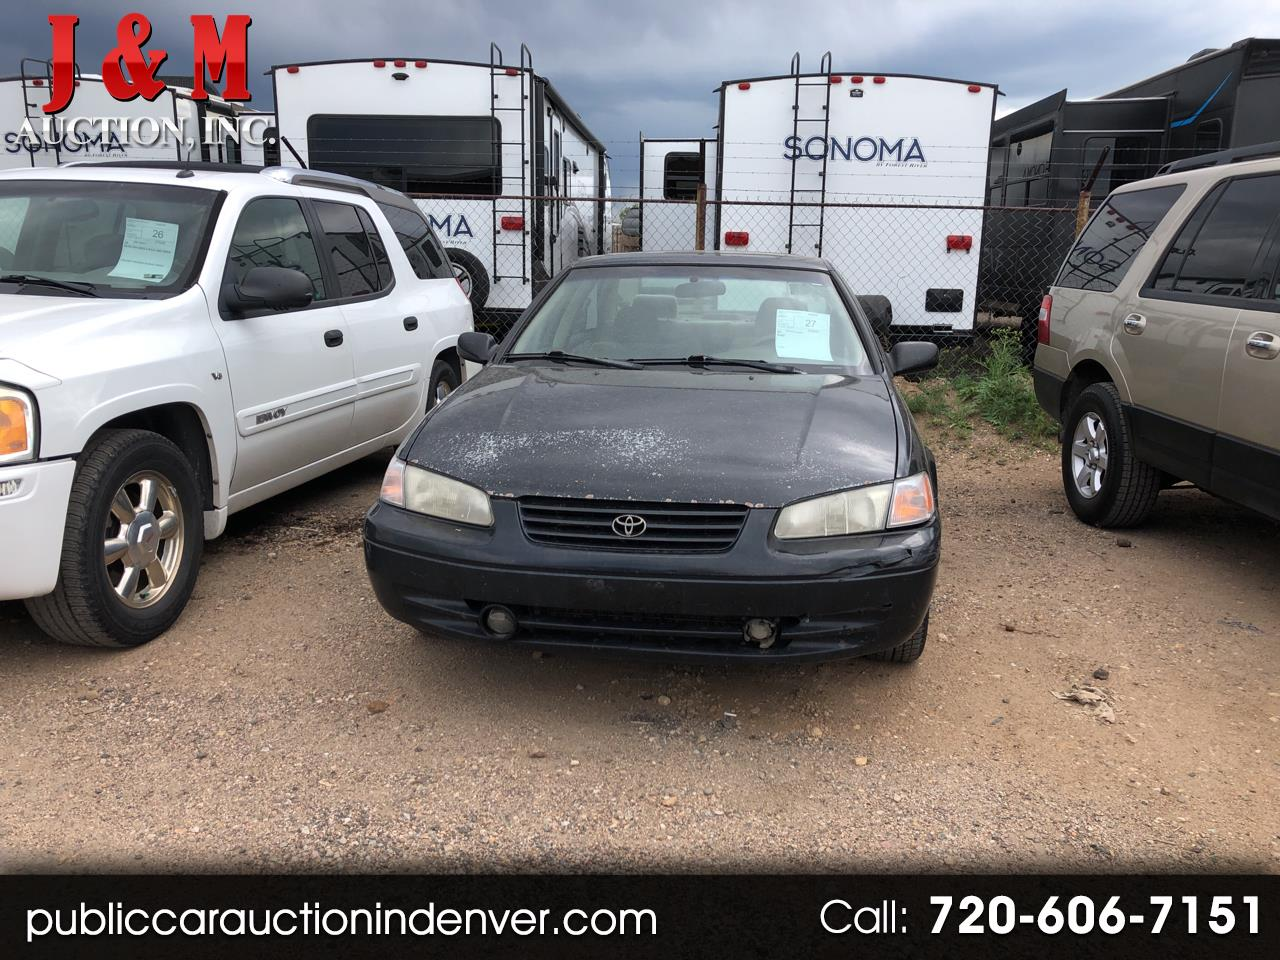 1999 Toyota Camry 4dr Sdn XLE V6 Auto